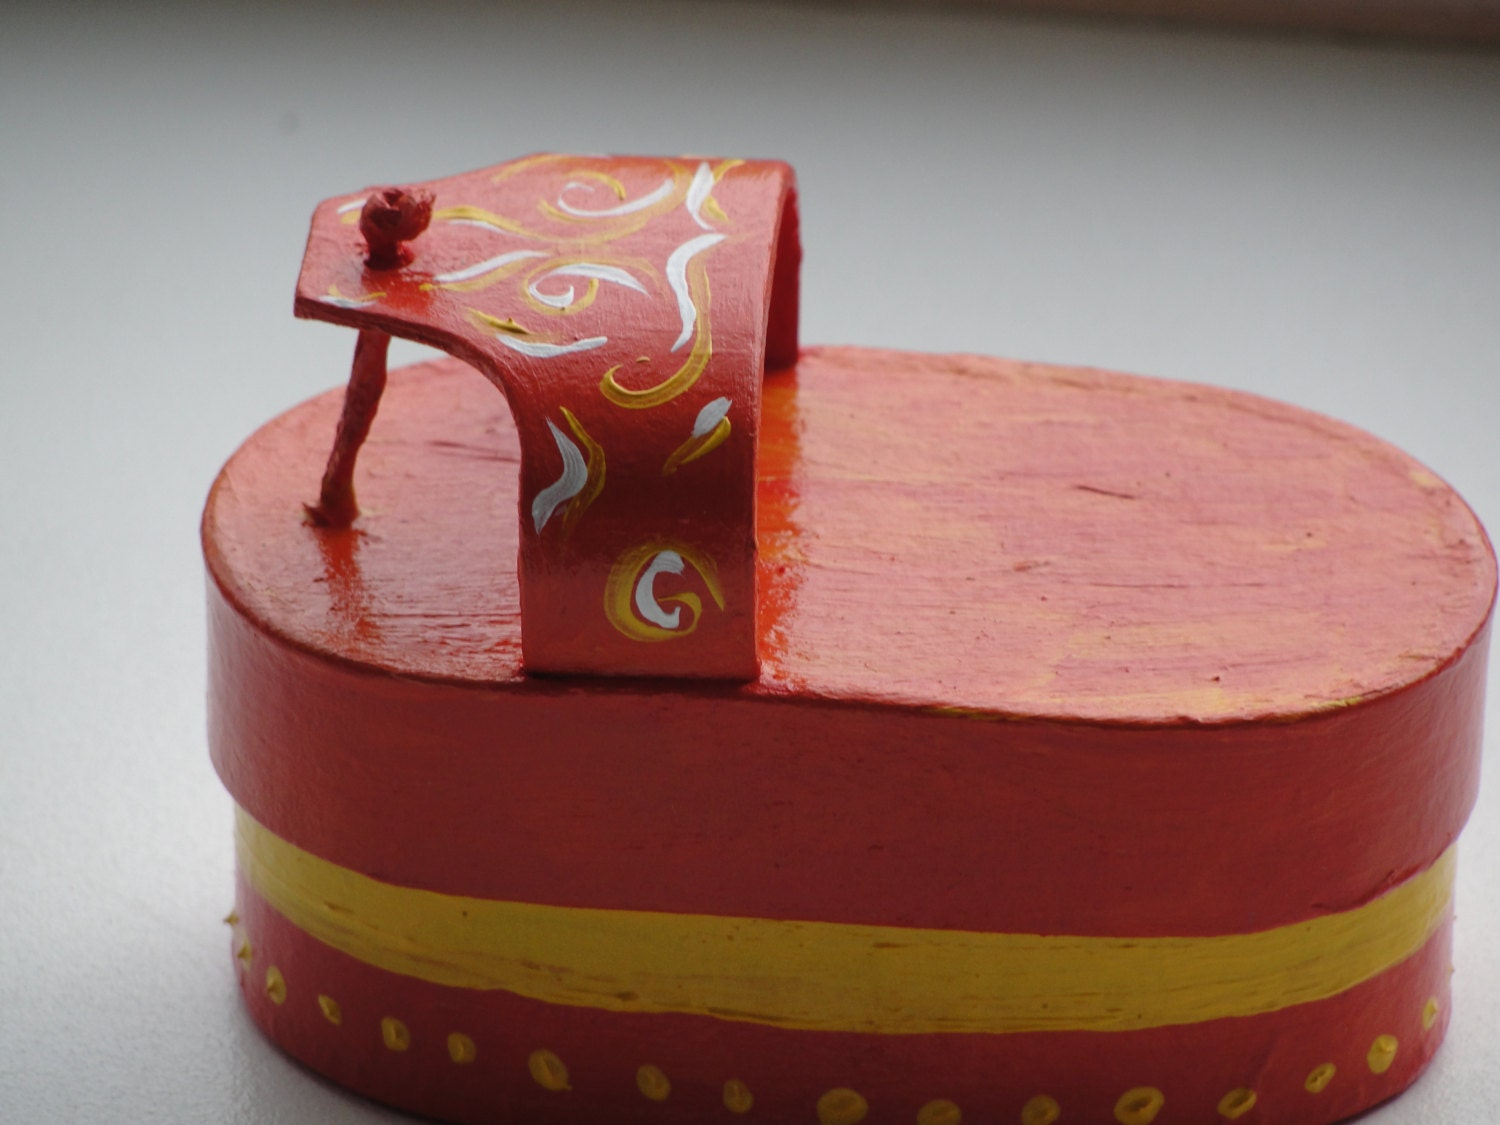 SUMMER FLIPFLOP BOX  orange flip flop shaped box hand painted orange yellow white